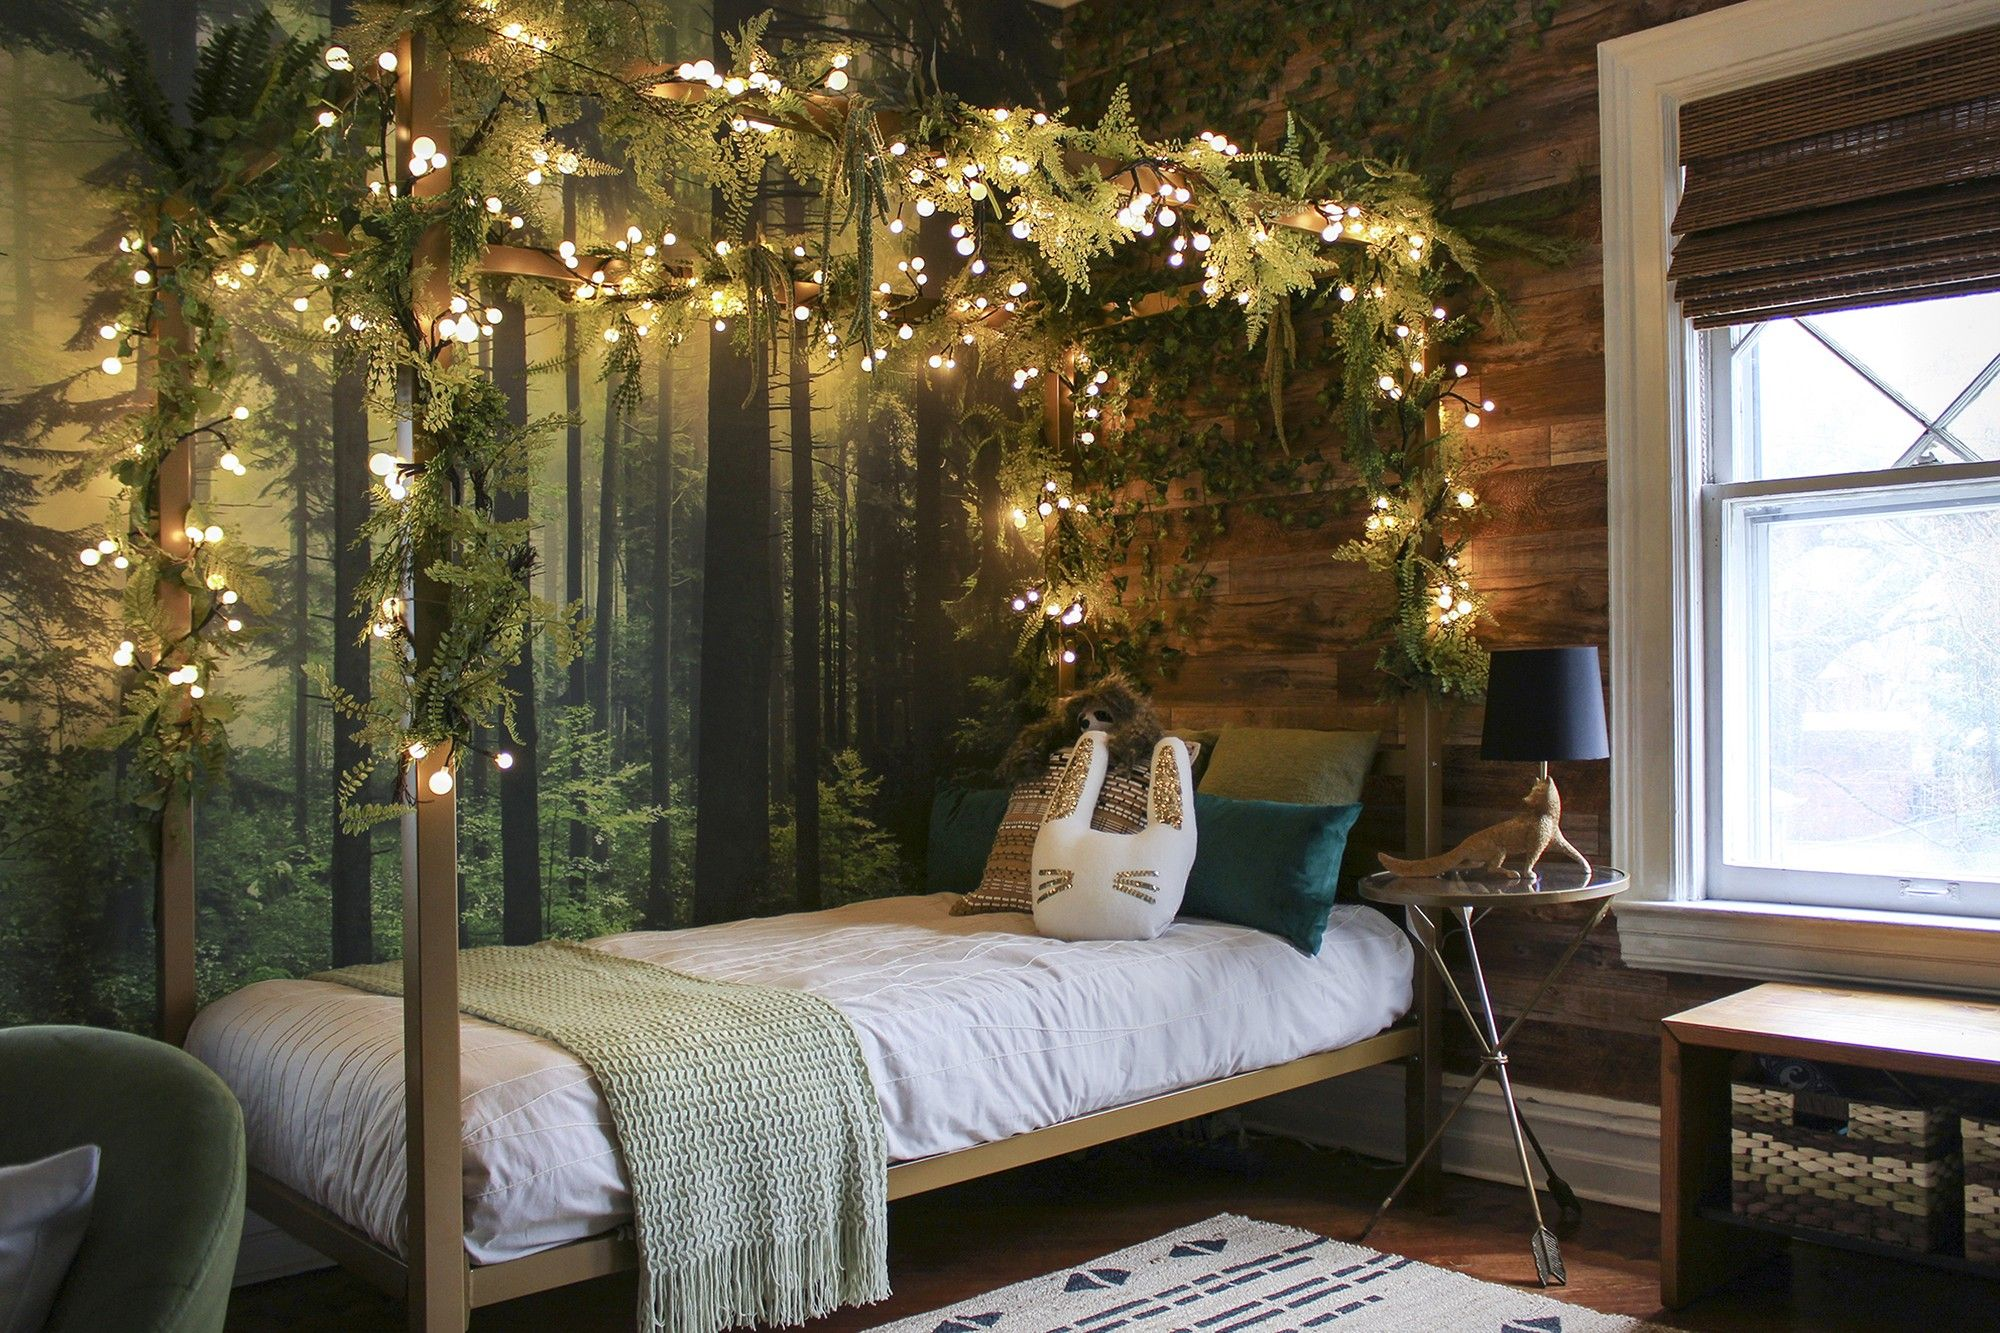 Pin By Alaina Kraft On Home Idea S In 2020 Forest Theme Bedrooms Forest Bedroom Girl Forest Room